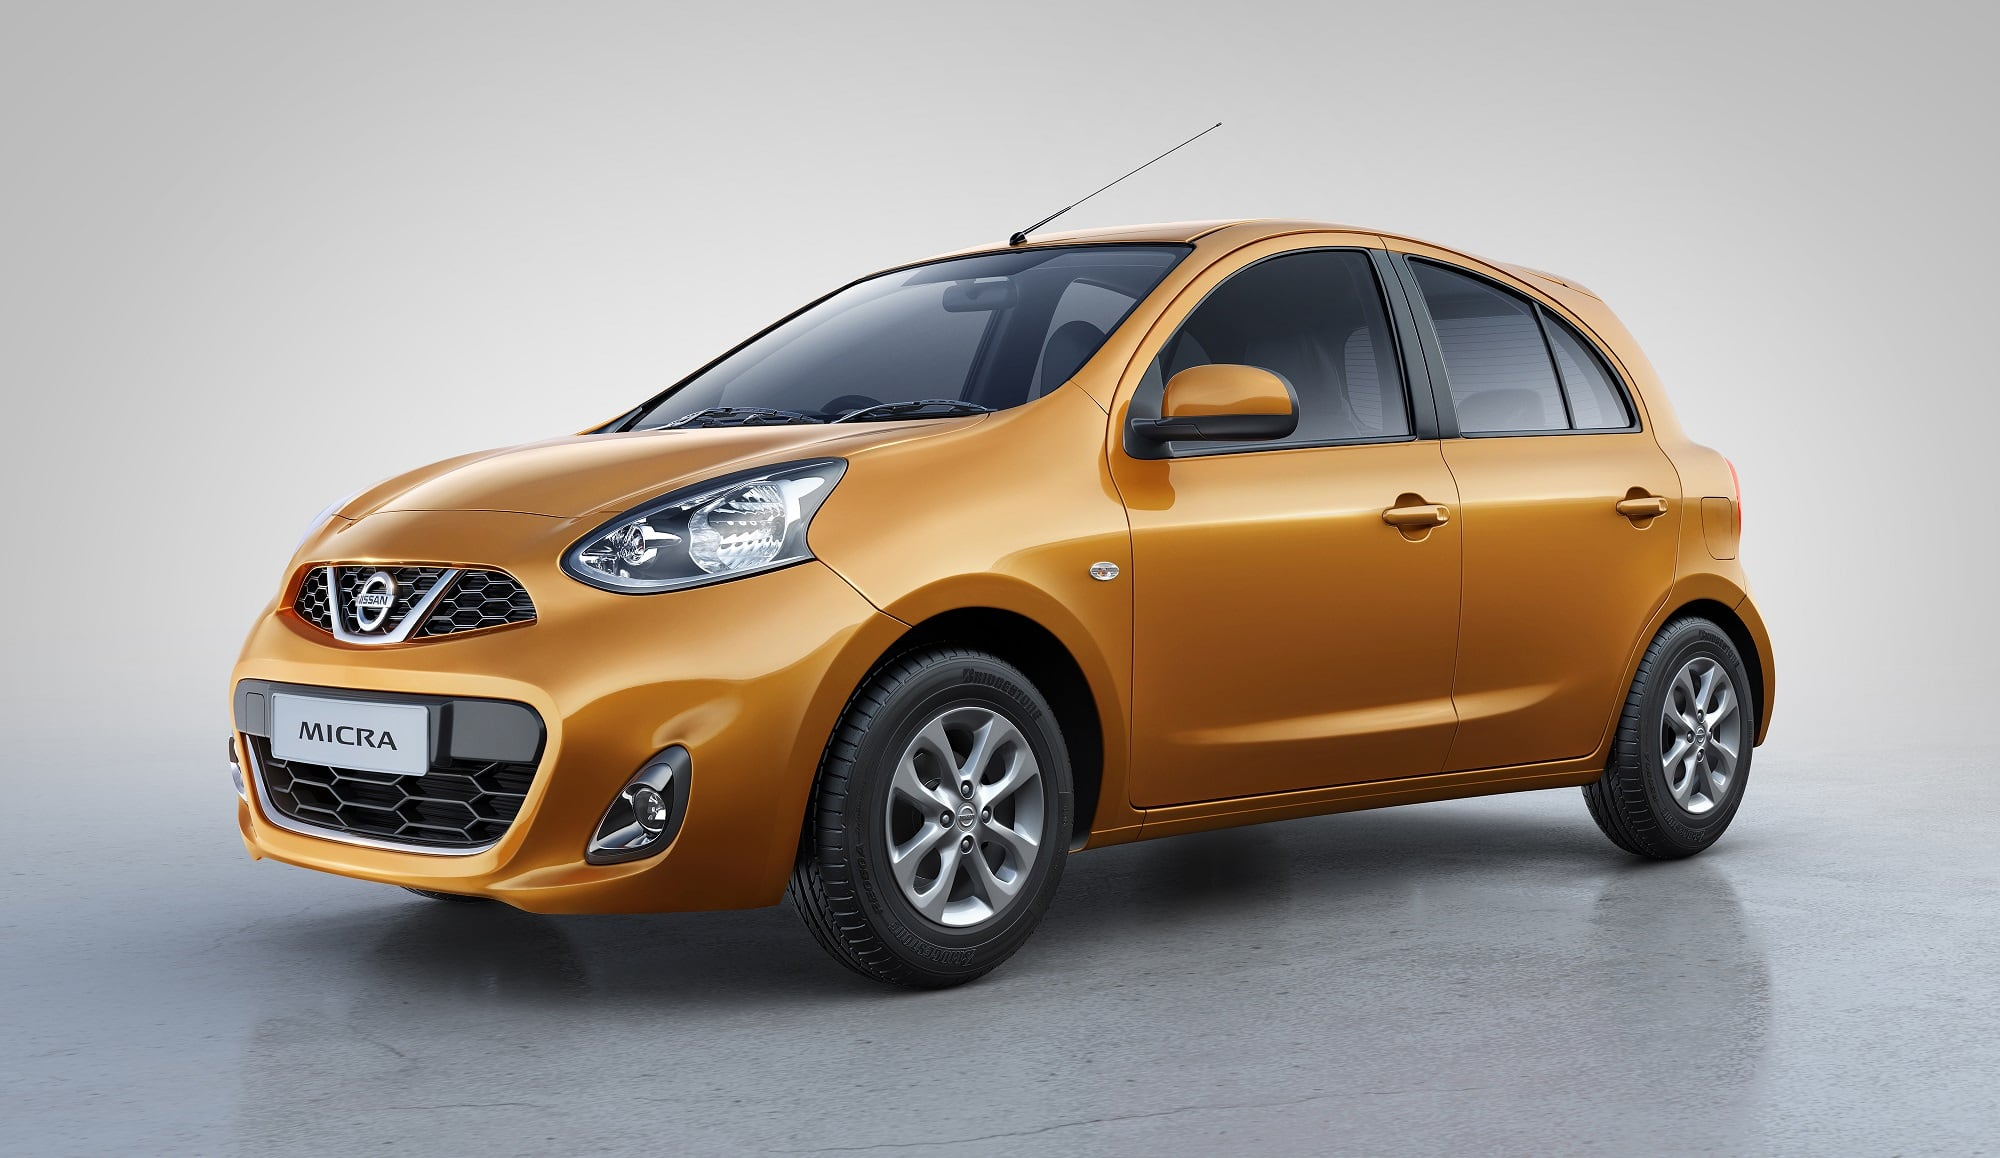 Nissan micra gets a new paint scheme for festive season priced at inr 4 55 lakh